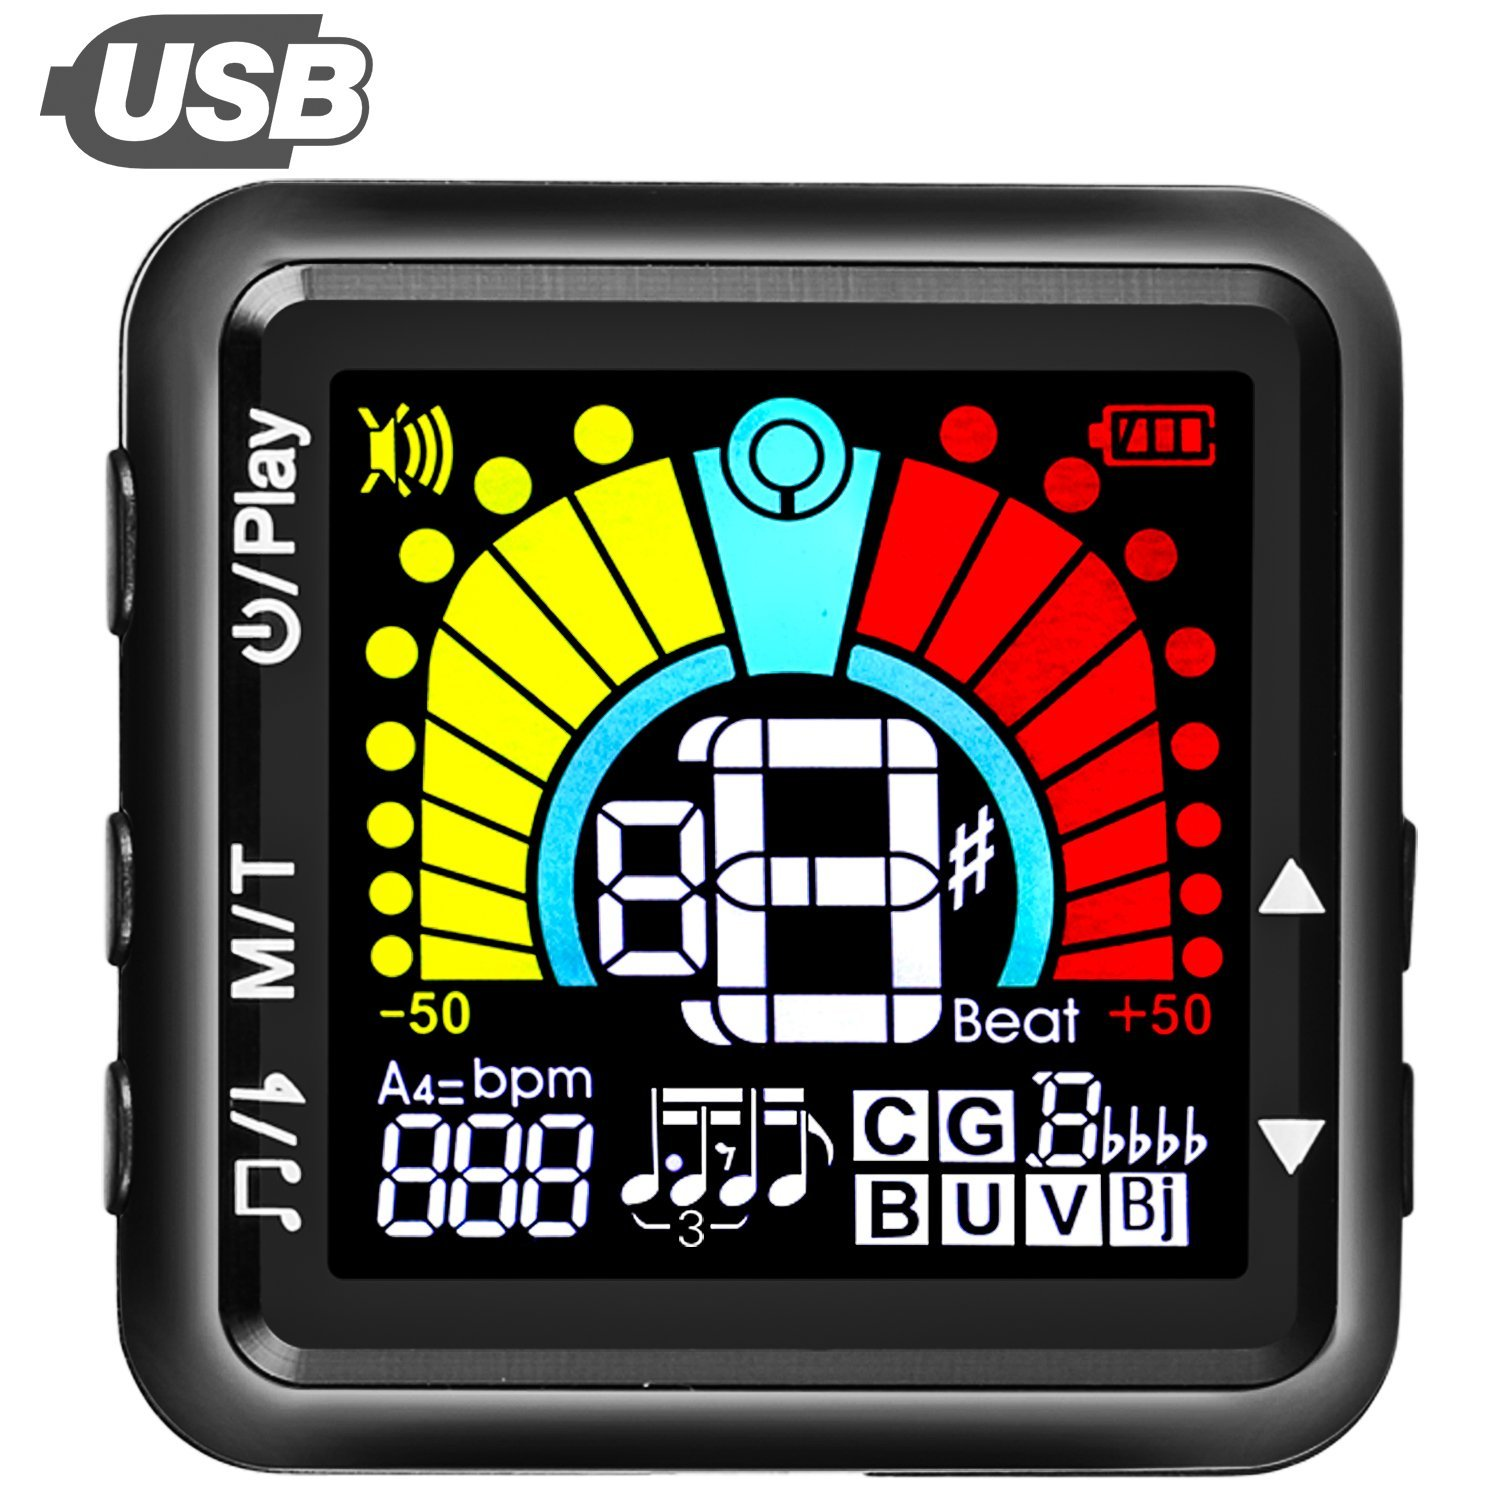 USB Rechargeable Guitar Tuner, Clip on Tuner for All Instruments, with Guitar, Bass, Violin, Ukulele & Chromatic Tuning Modes